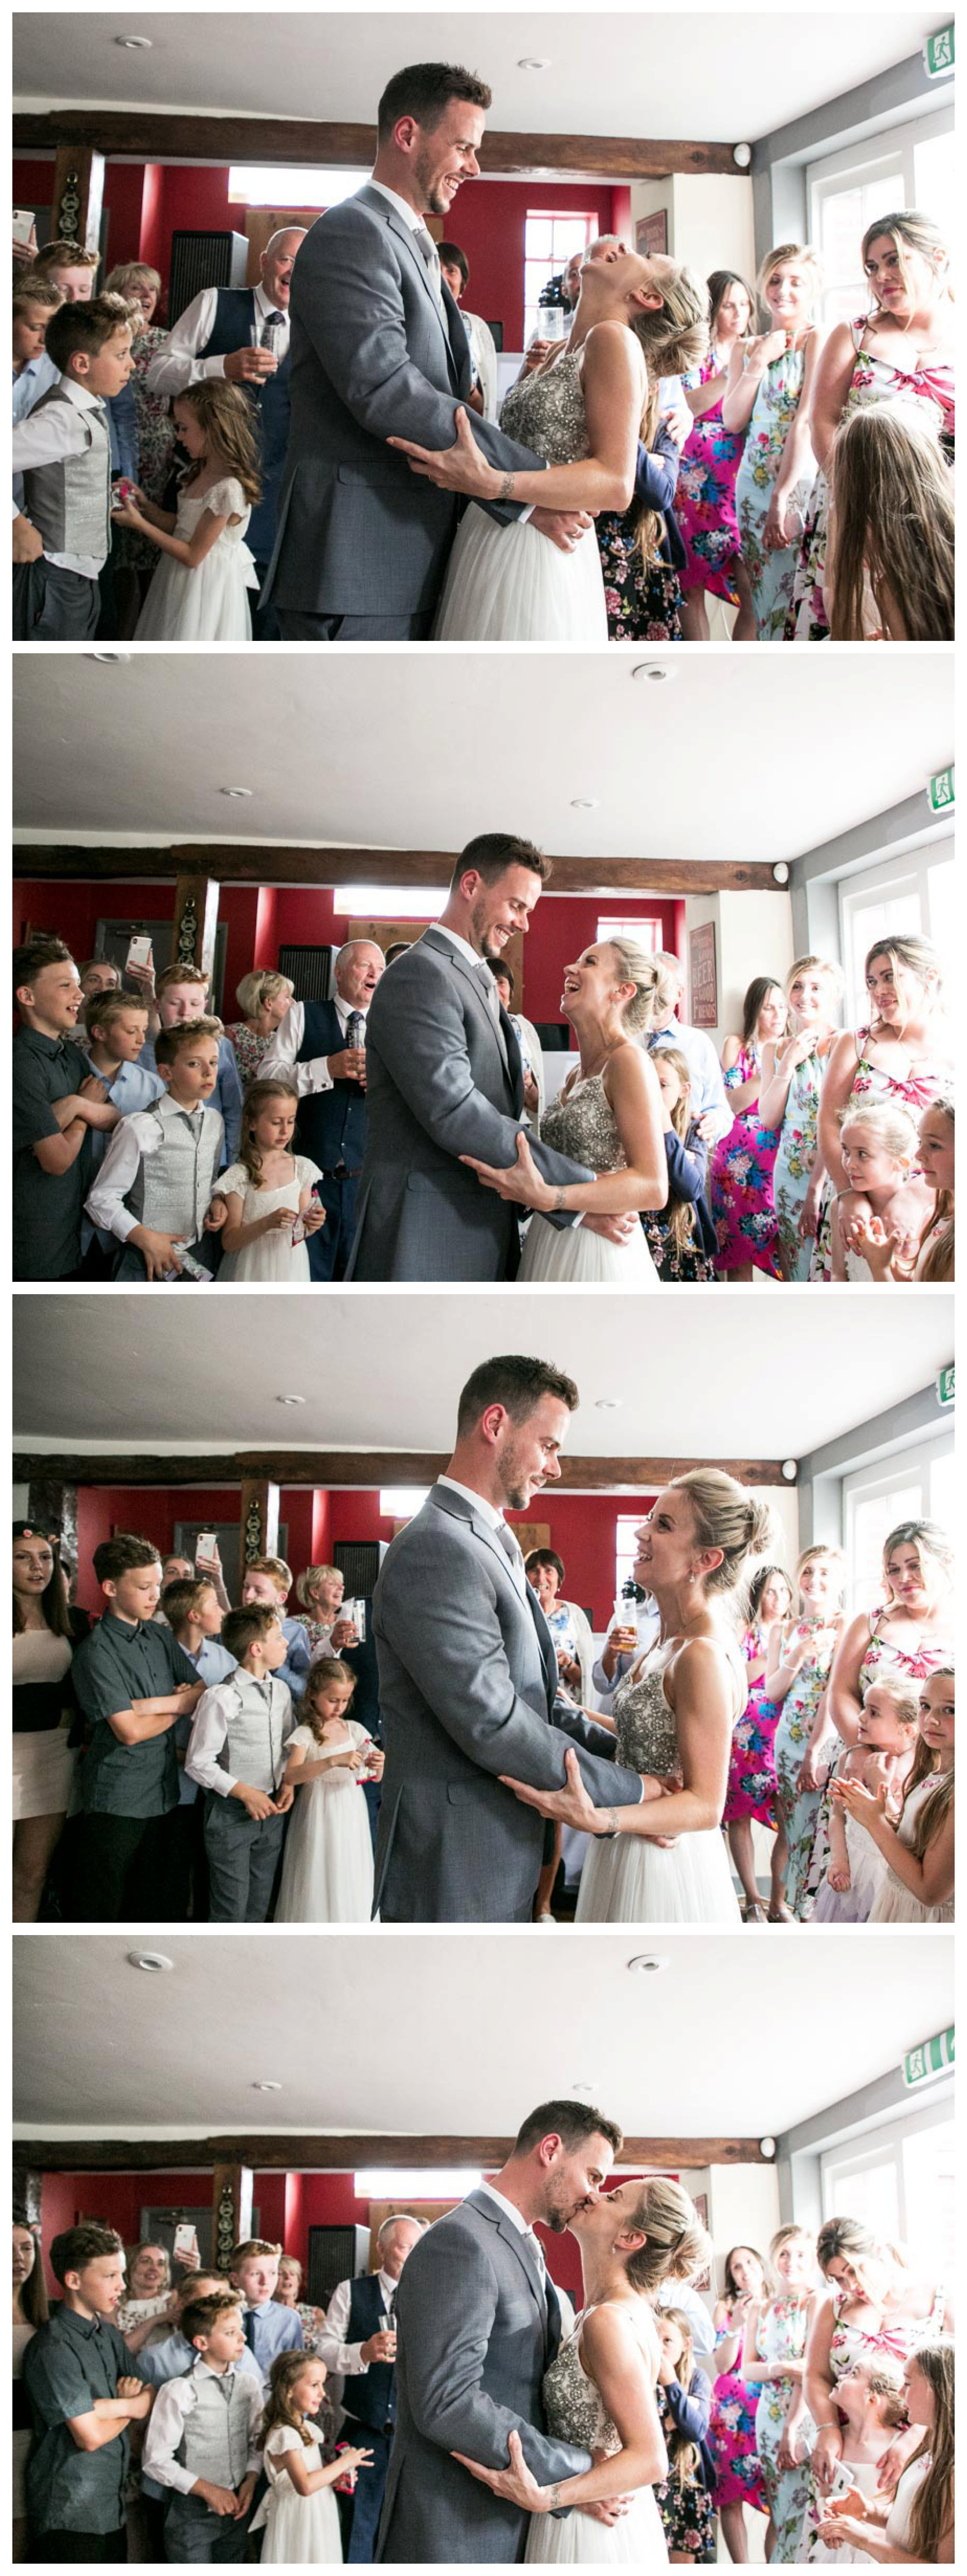 fun laughing as bride and groom have first dance at wedding reception in a pub